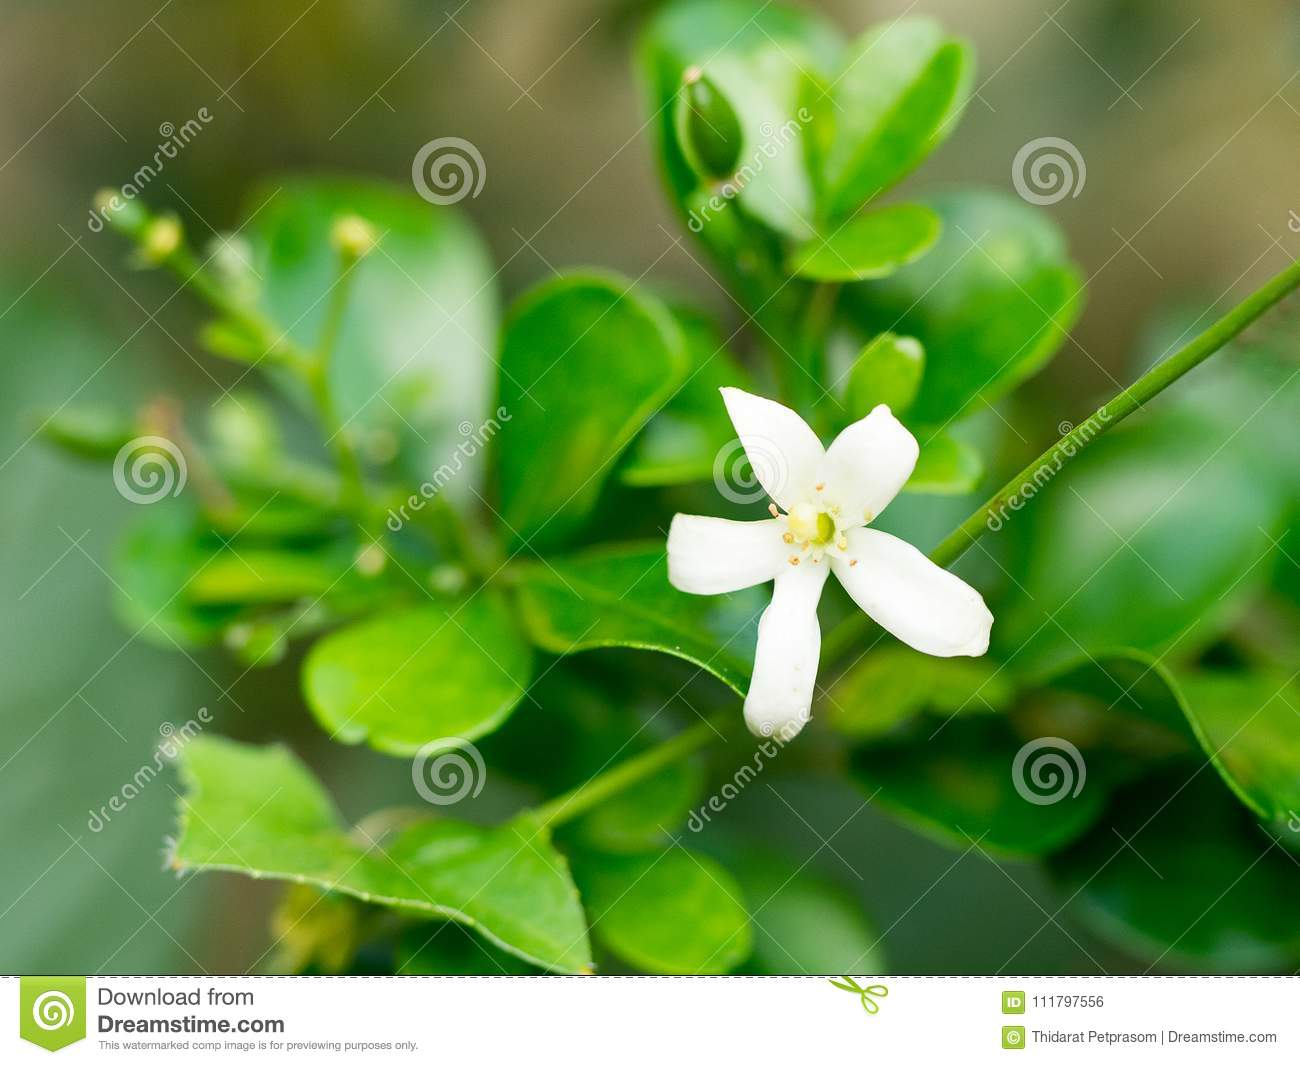 White flower orange jessamine flower sweet smell flower for make white flower orange jessamine flower sweet smell flower for make perfume mightylinksfo